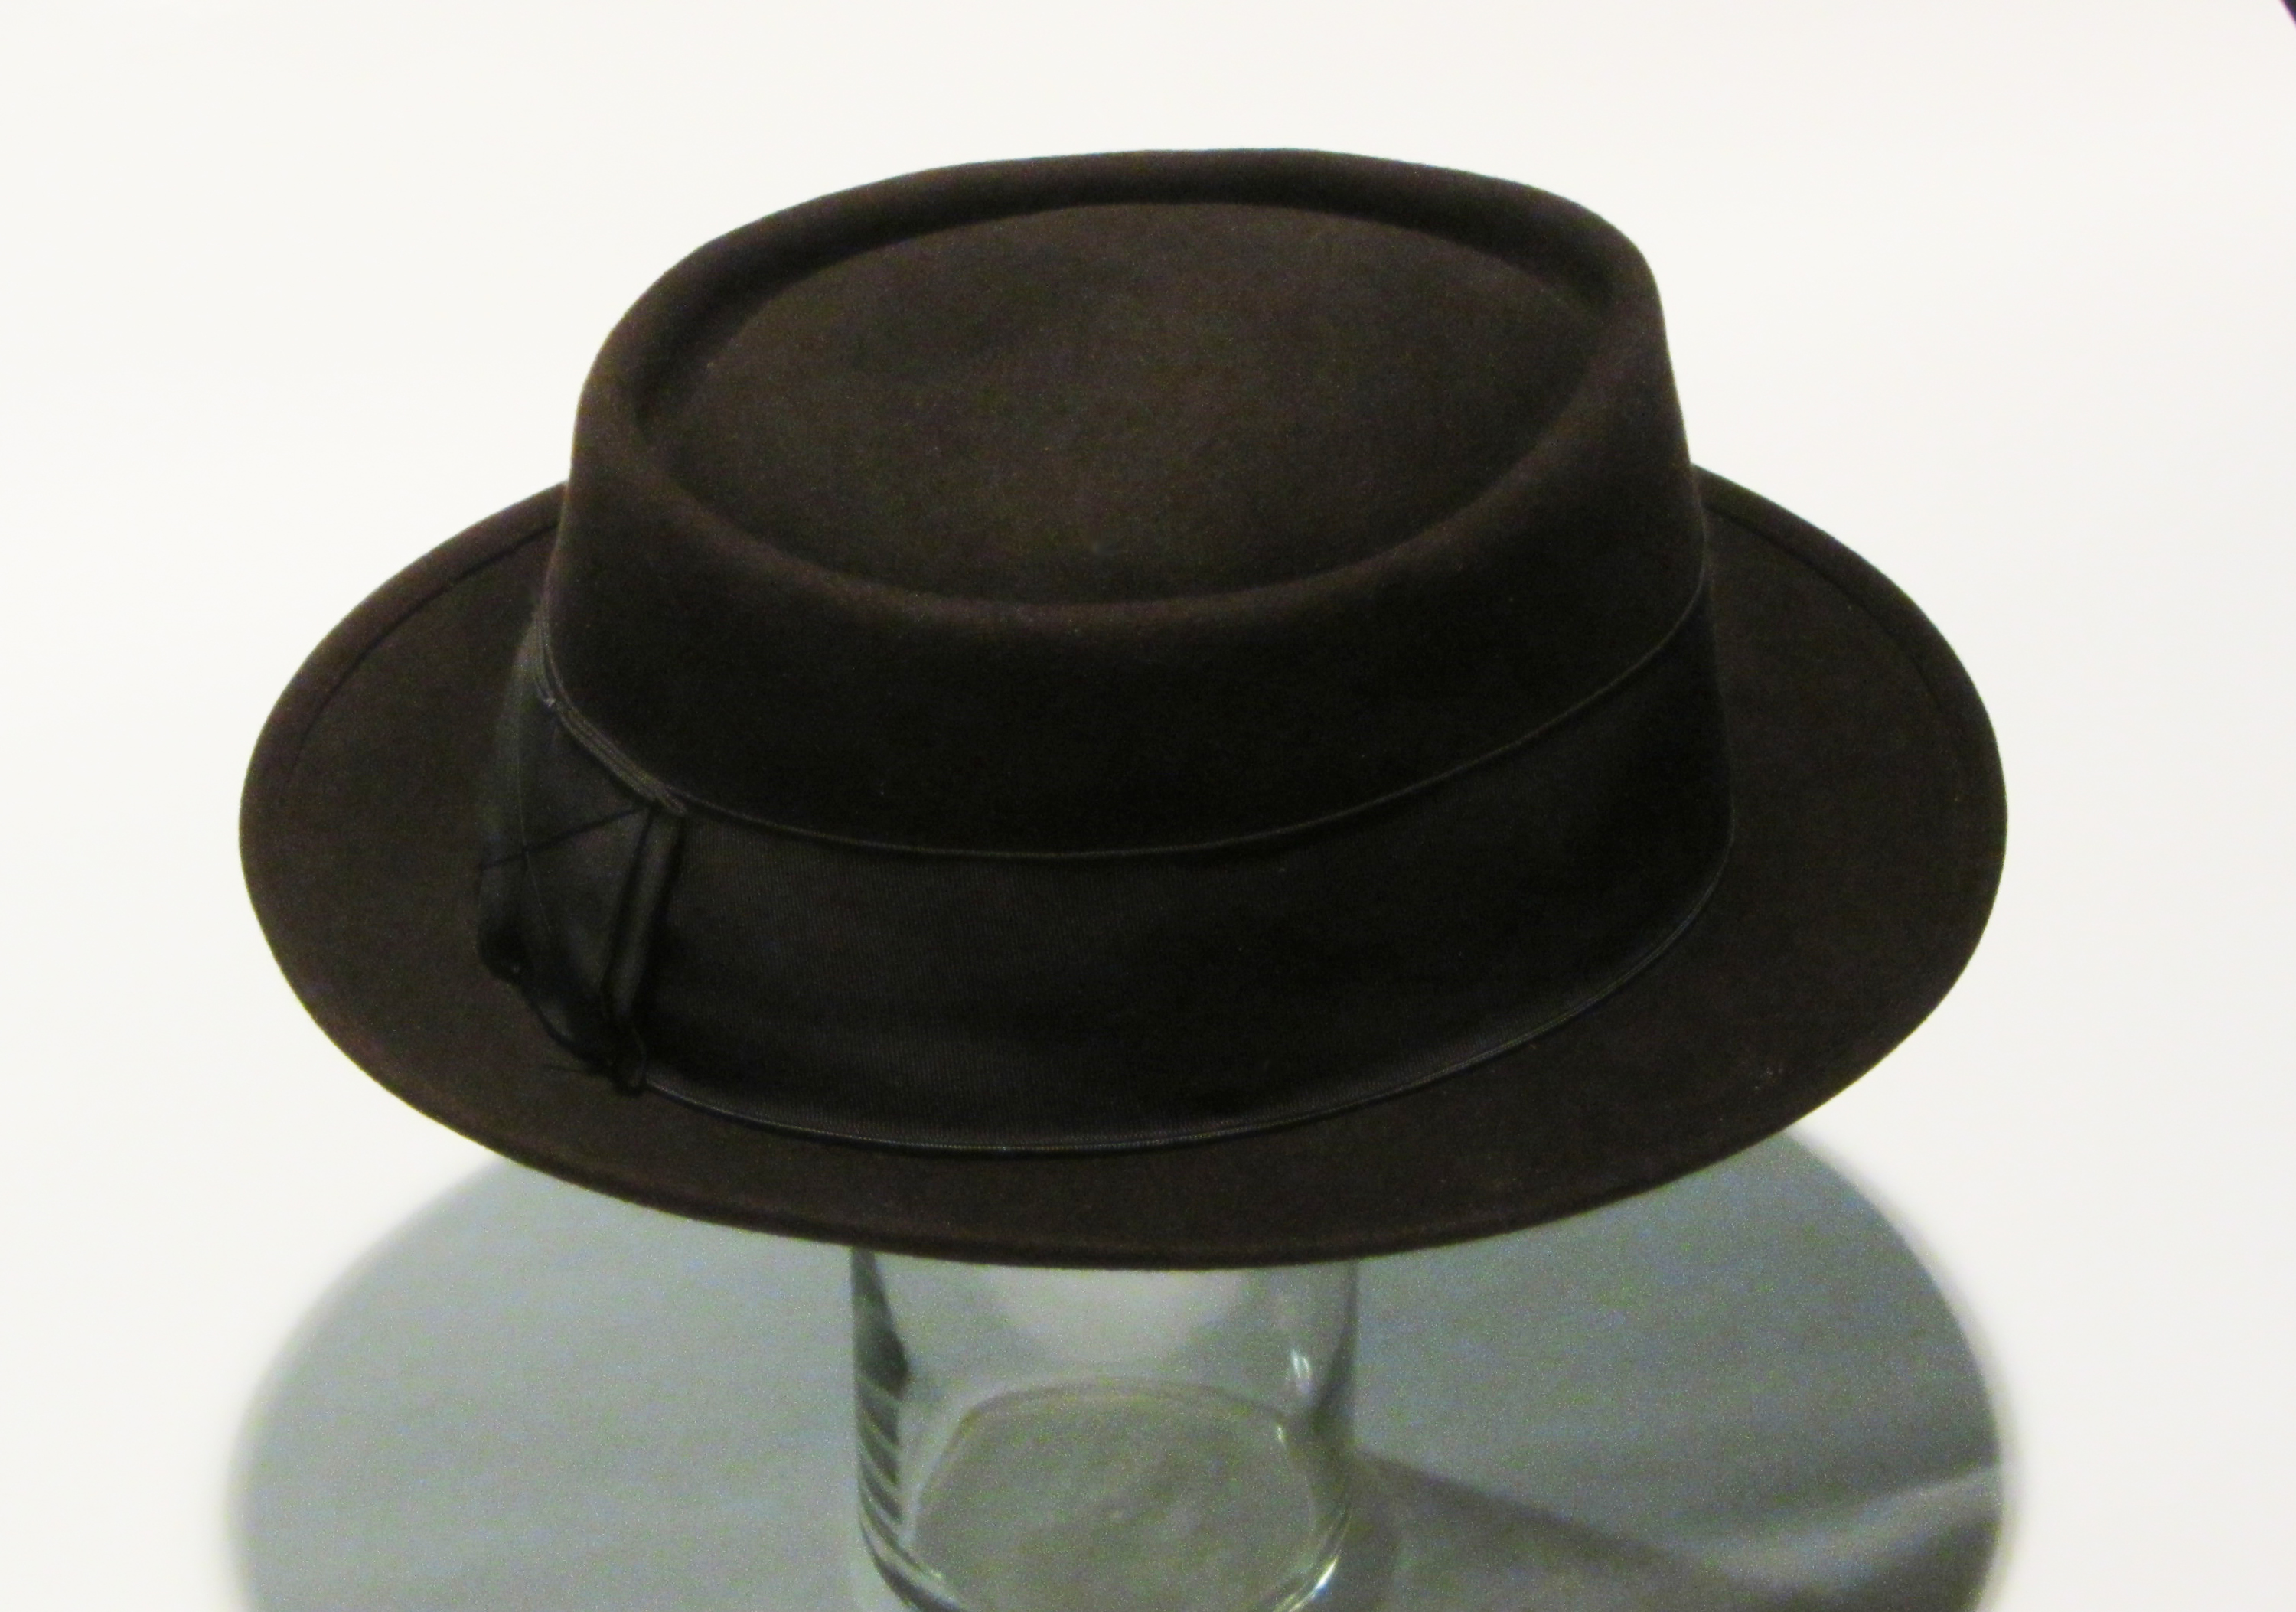 182b4cf2e6d Pork pie hat - Wikipedia